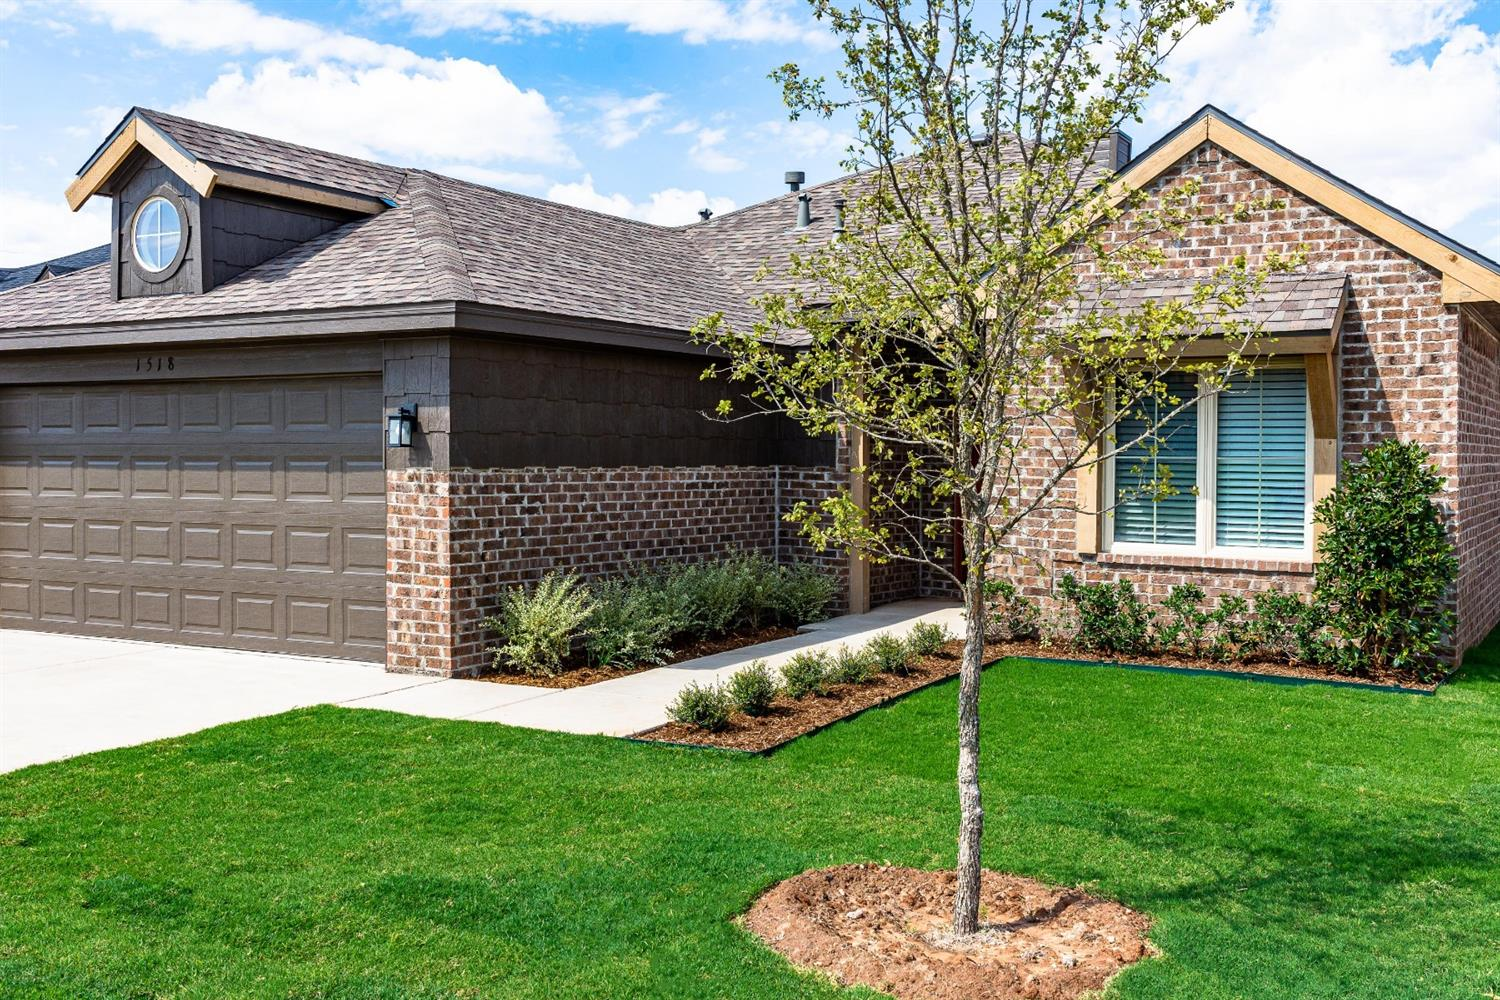 Beautiful 3/2/2 Plus 20 x 30 Shop New Construction by Ventura Homes in Cedar Park! Located on an Over-sized Lot, Walk into an Open floor plan with 10' Ceilings, Floor to Ceiling Brick Fireplace & Vinyl plank flooring. Kitchen offers Granite, Large Island, Gas Range, Stainless Steel Appliances & Pantry! Awesome Dining Area with Built-in Buffet. Isolated Master Suite lets you Escape to your own space! Master Bath w/Double Granite Vanities, Separate Shower and Soaking Tub & Large Walk-in Closet! 2nd Full Bath offers Double Granite Vanities and plenty of storage. Fenced Backyard with 20x30 Bricked SHOP with Electricity & Overhead Door! Additional Features include Foam Insulation, 2 Faux Wood Blinds, Designer Lighting, Built-in Linen Storage in Baths & Laundry, Sprinkler/Sod, 6'Fence w/Steel Posts, Special Ceilings, Full Builder's warranty! Just minutes away from Medical Center, Shopping, Restaurants & Texas Tech University!